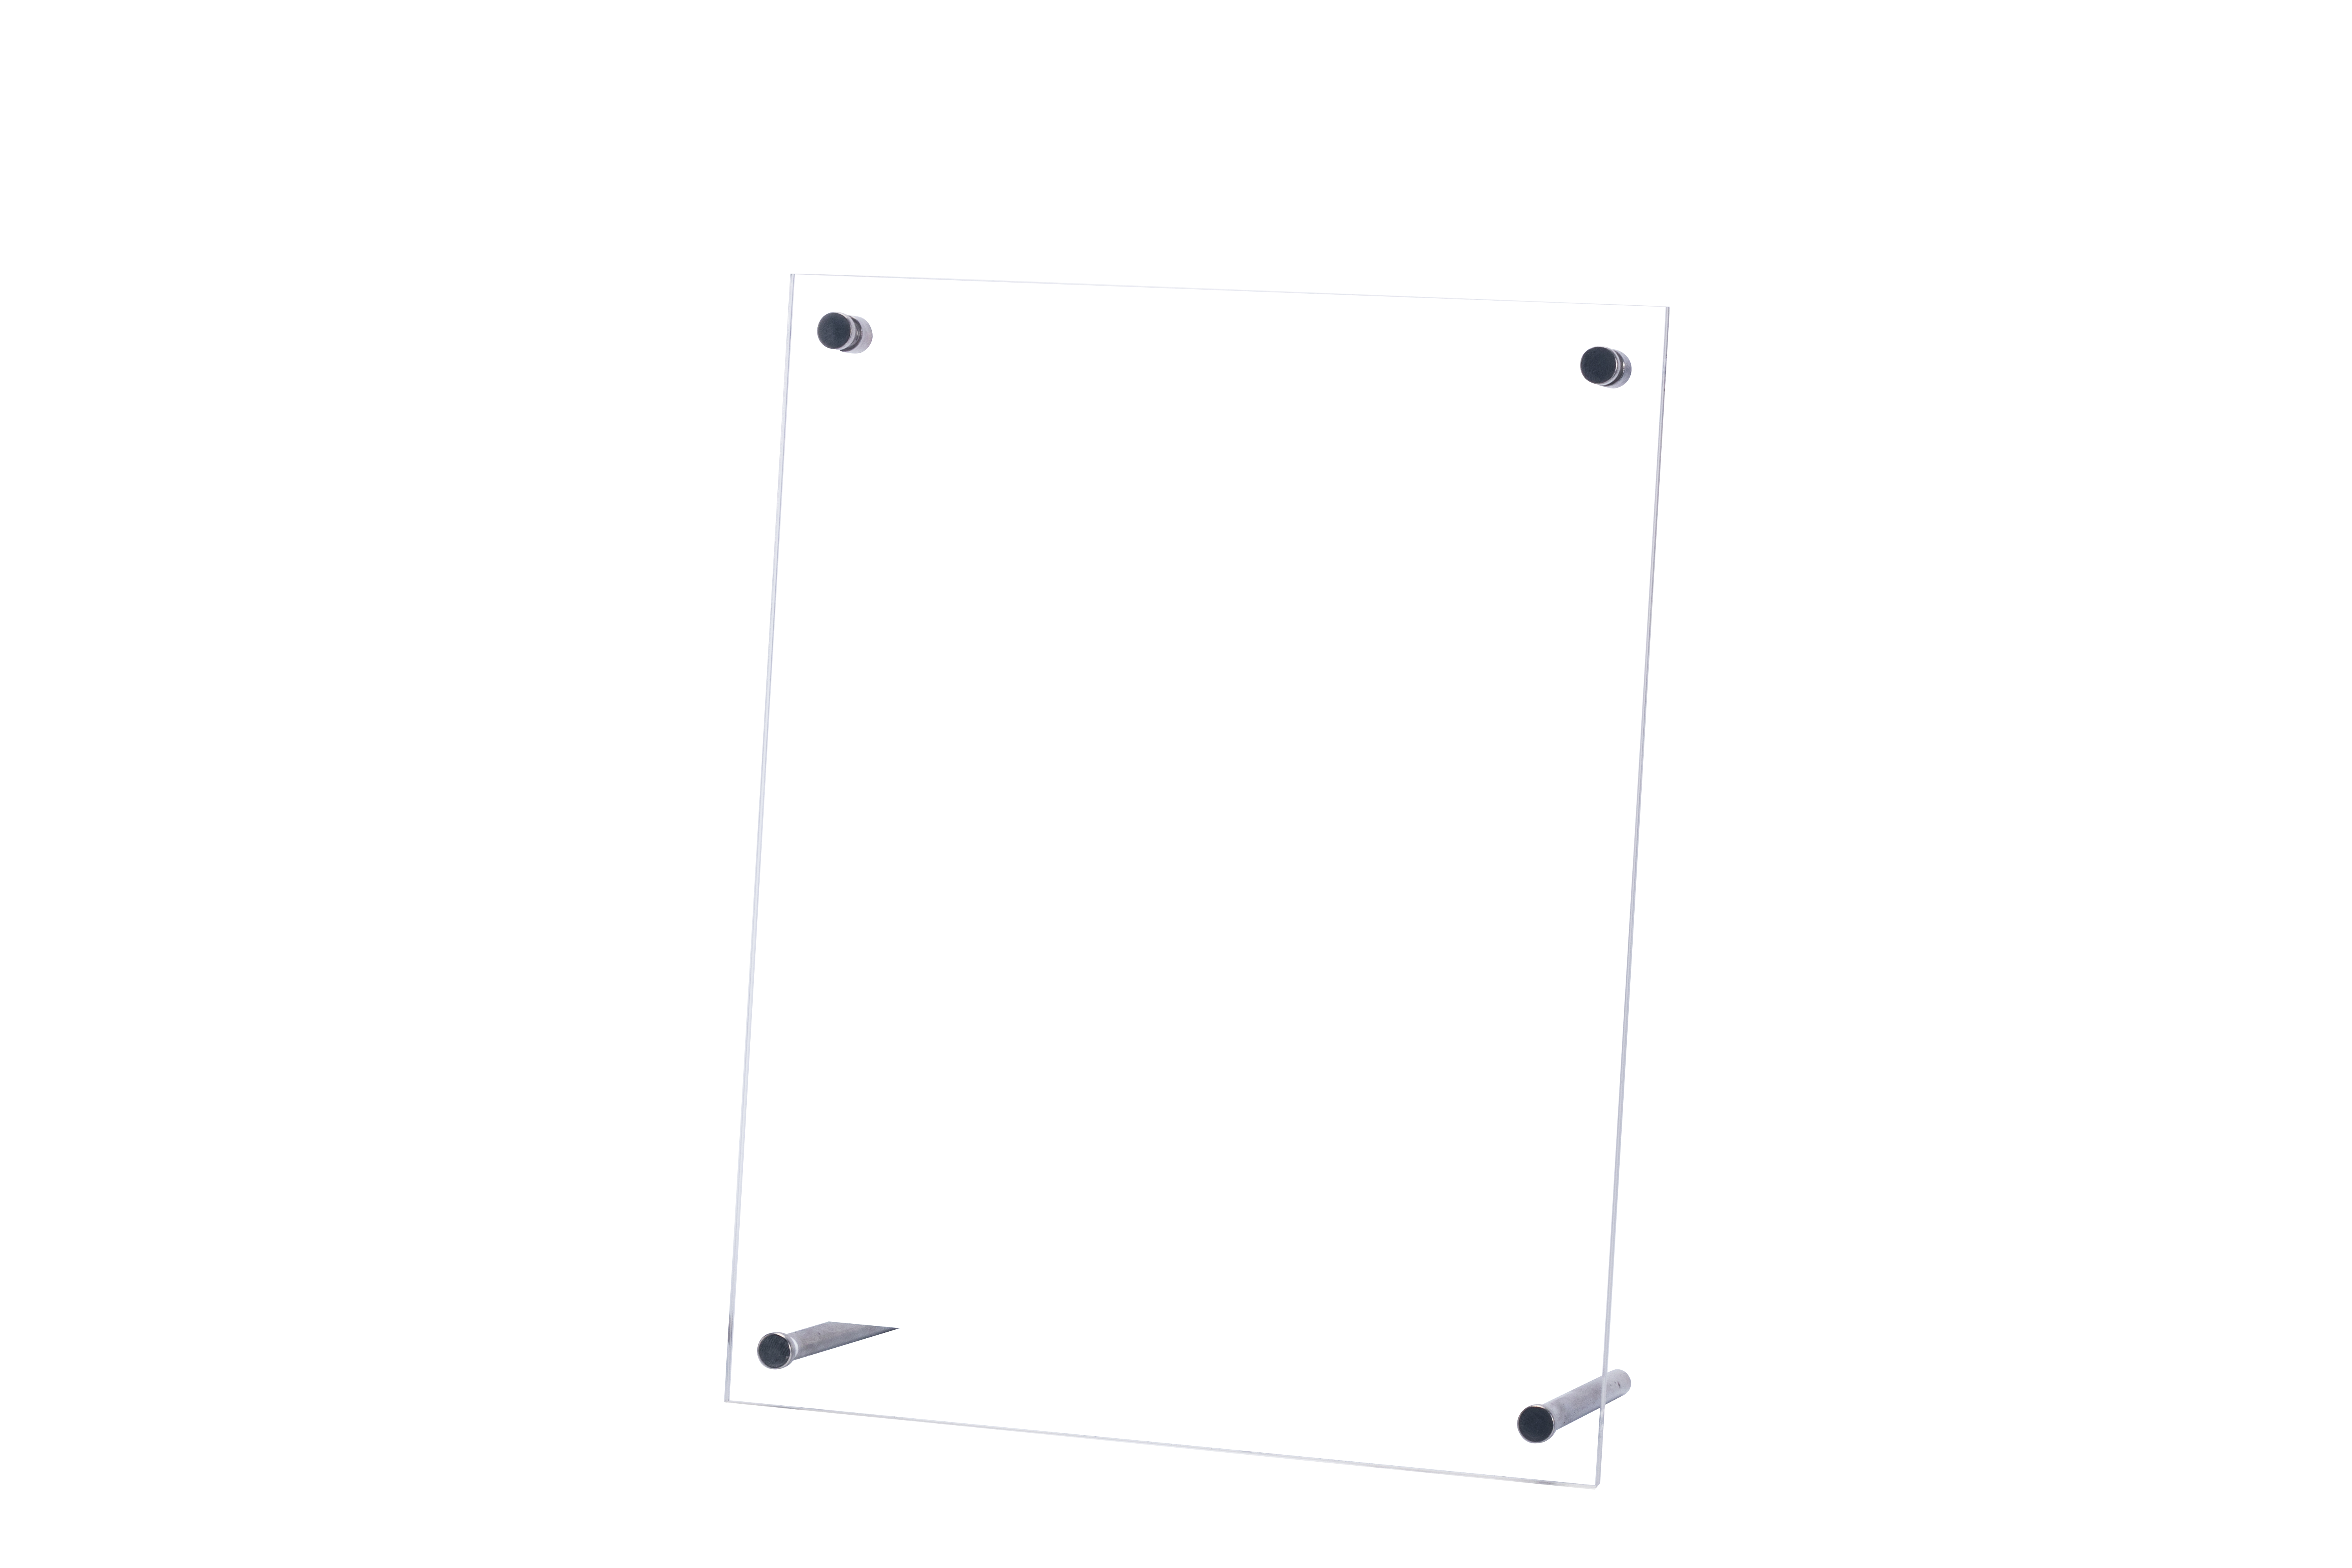 Glass square png. White floor tile pattern